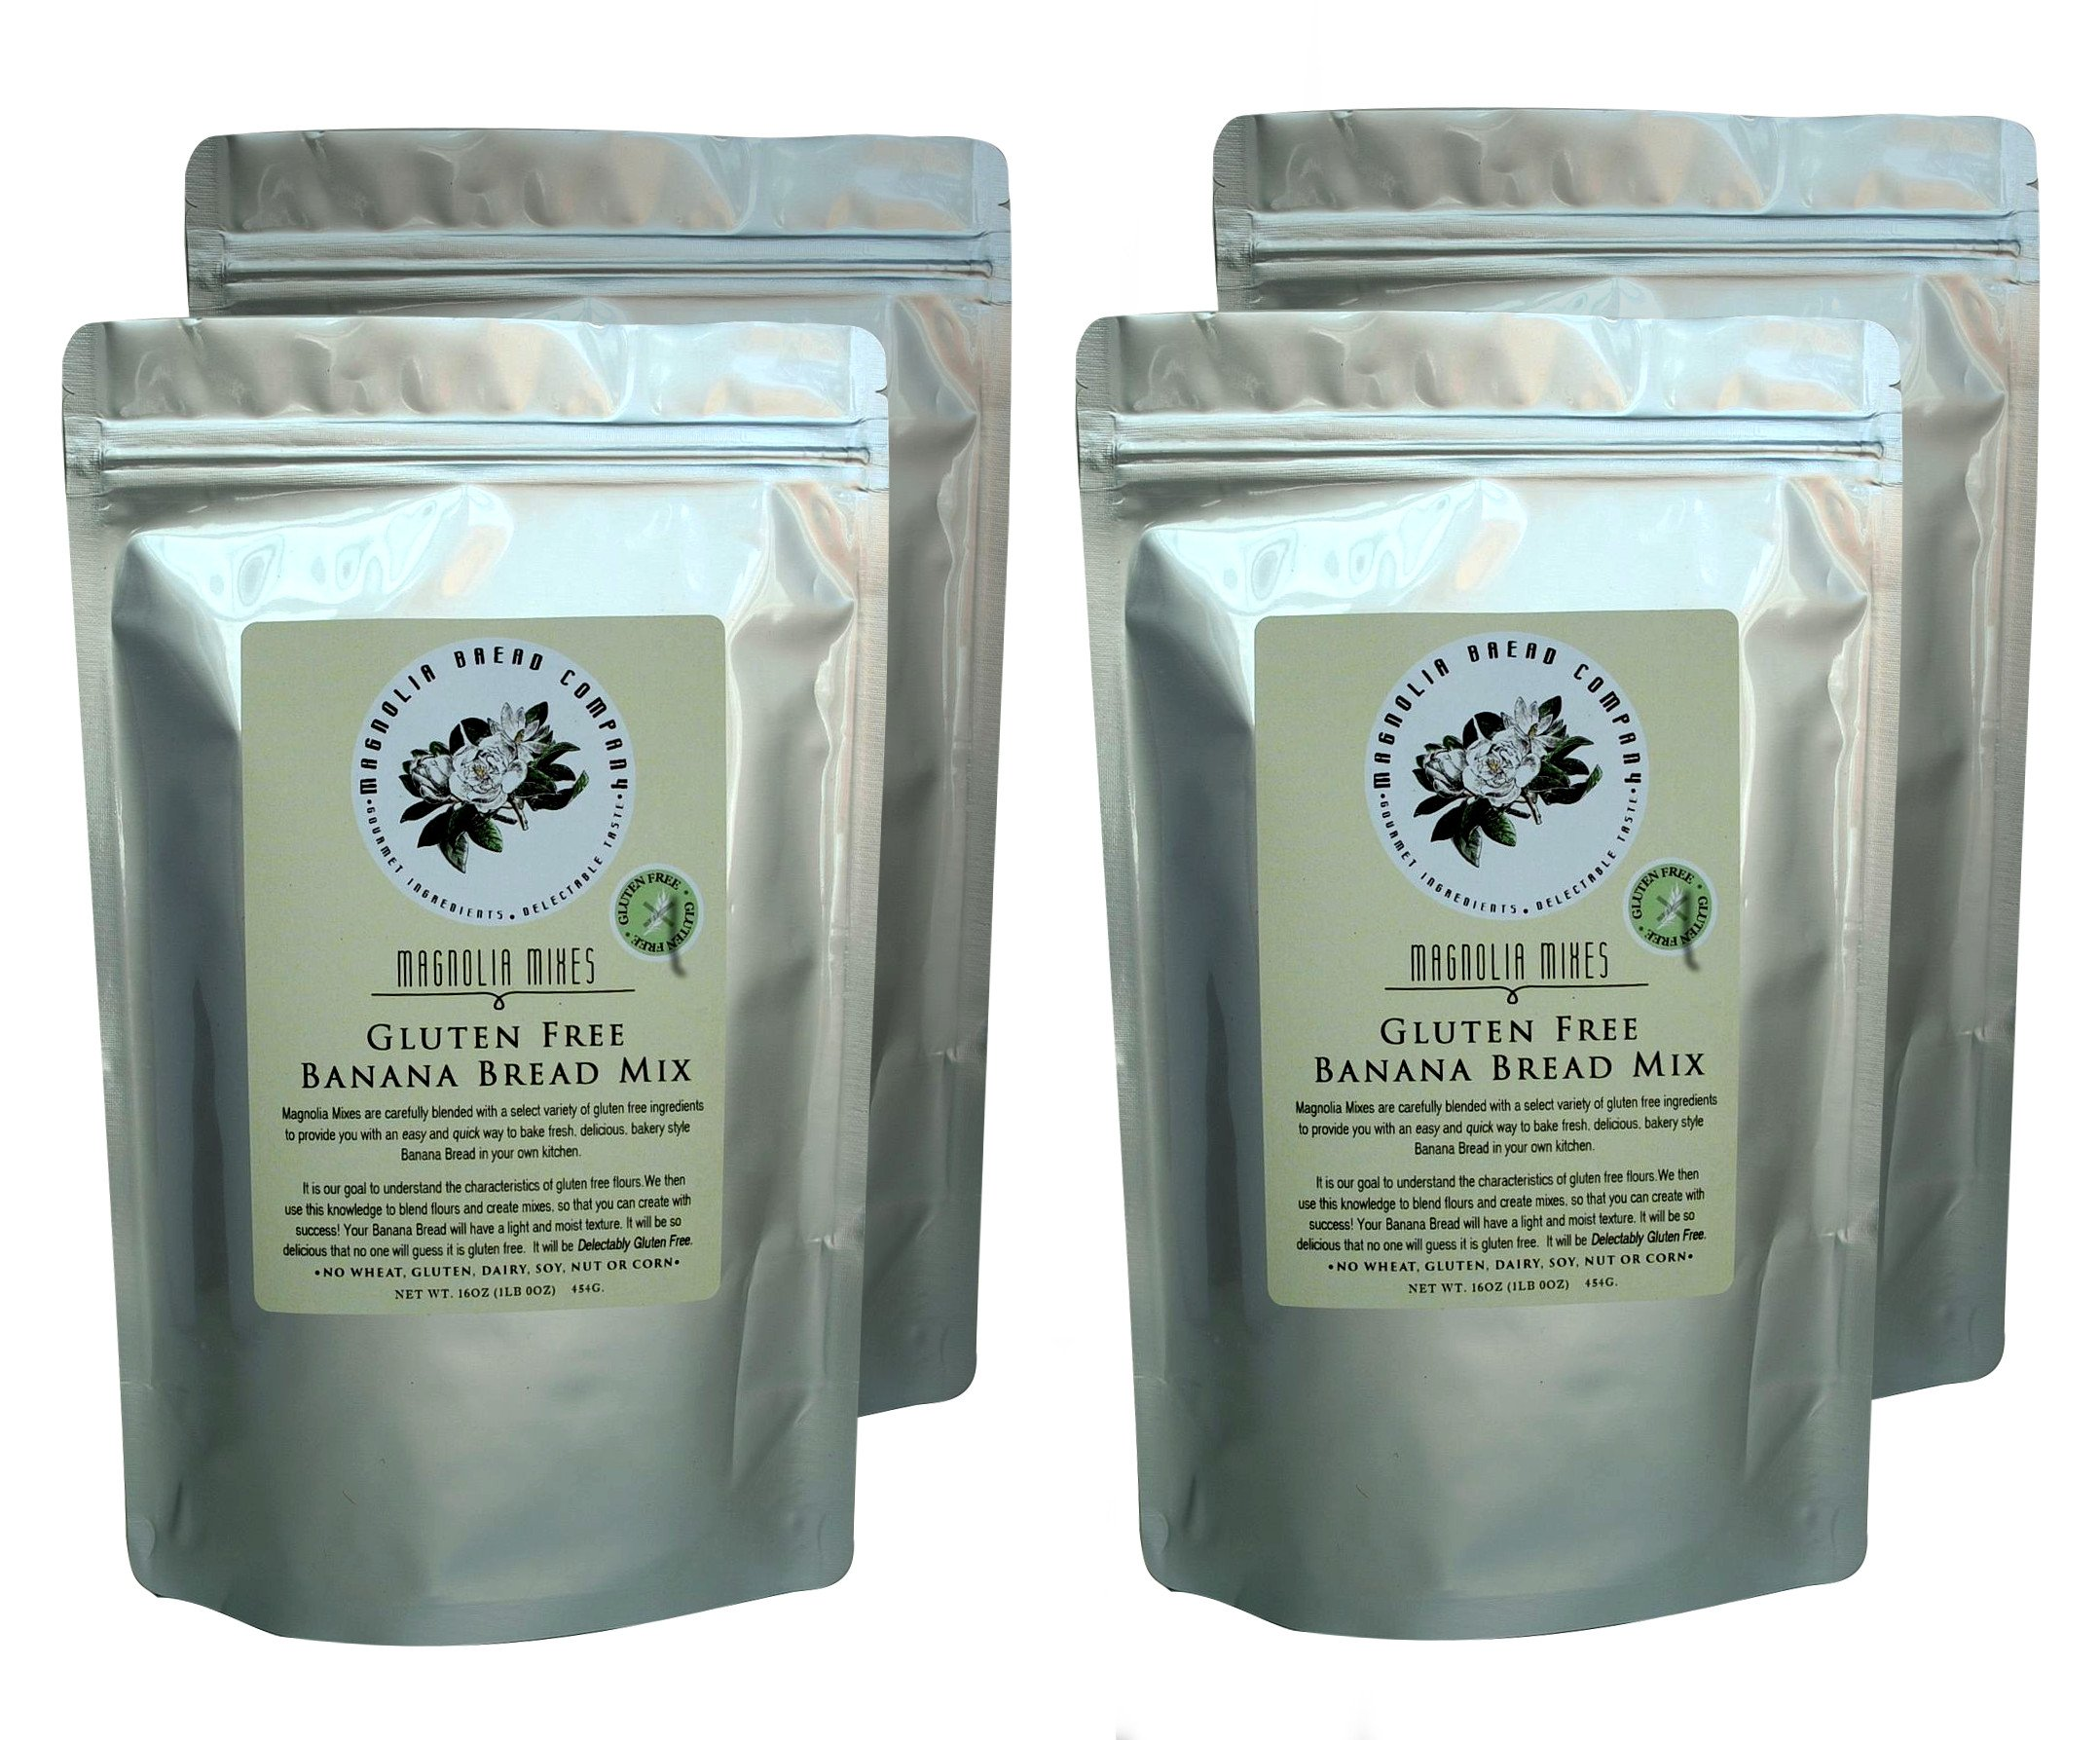 Gluten Free Banana Bread Mix by Magnolia Mixes (Pack of 4)